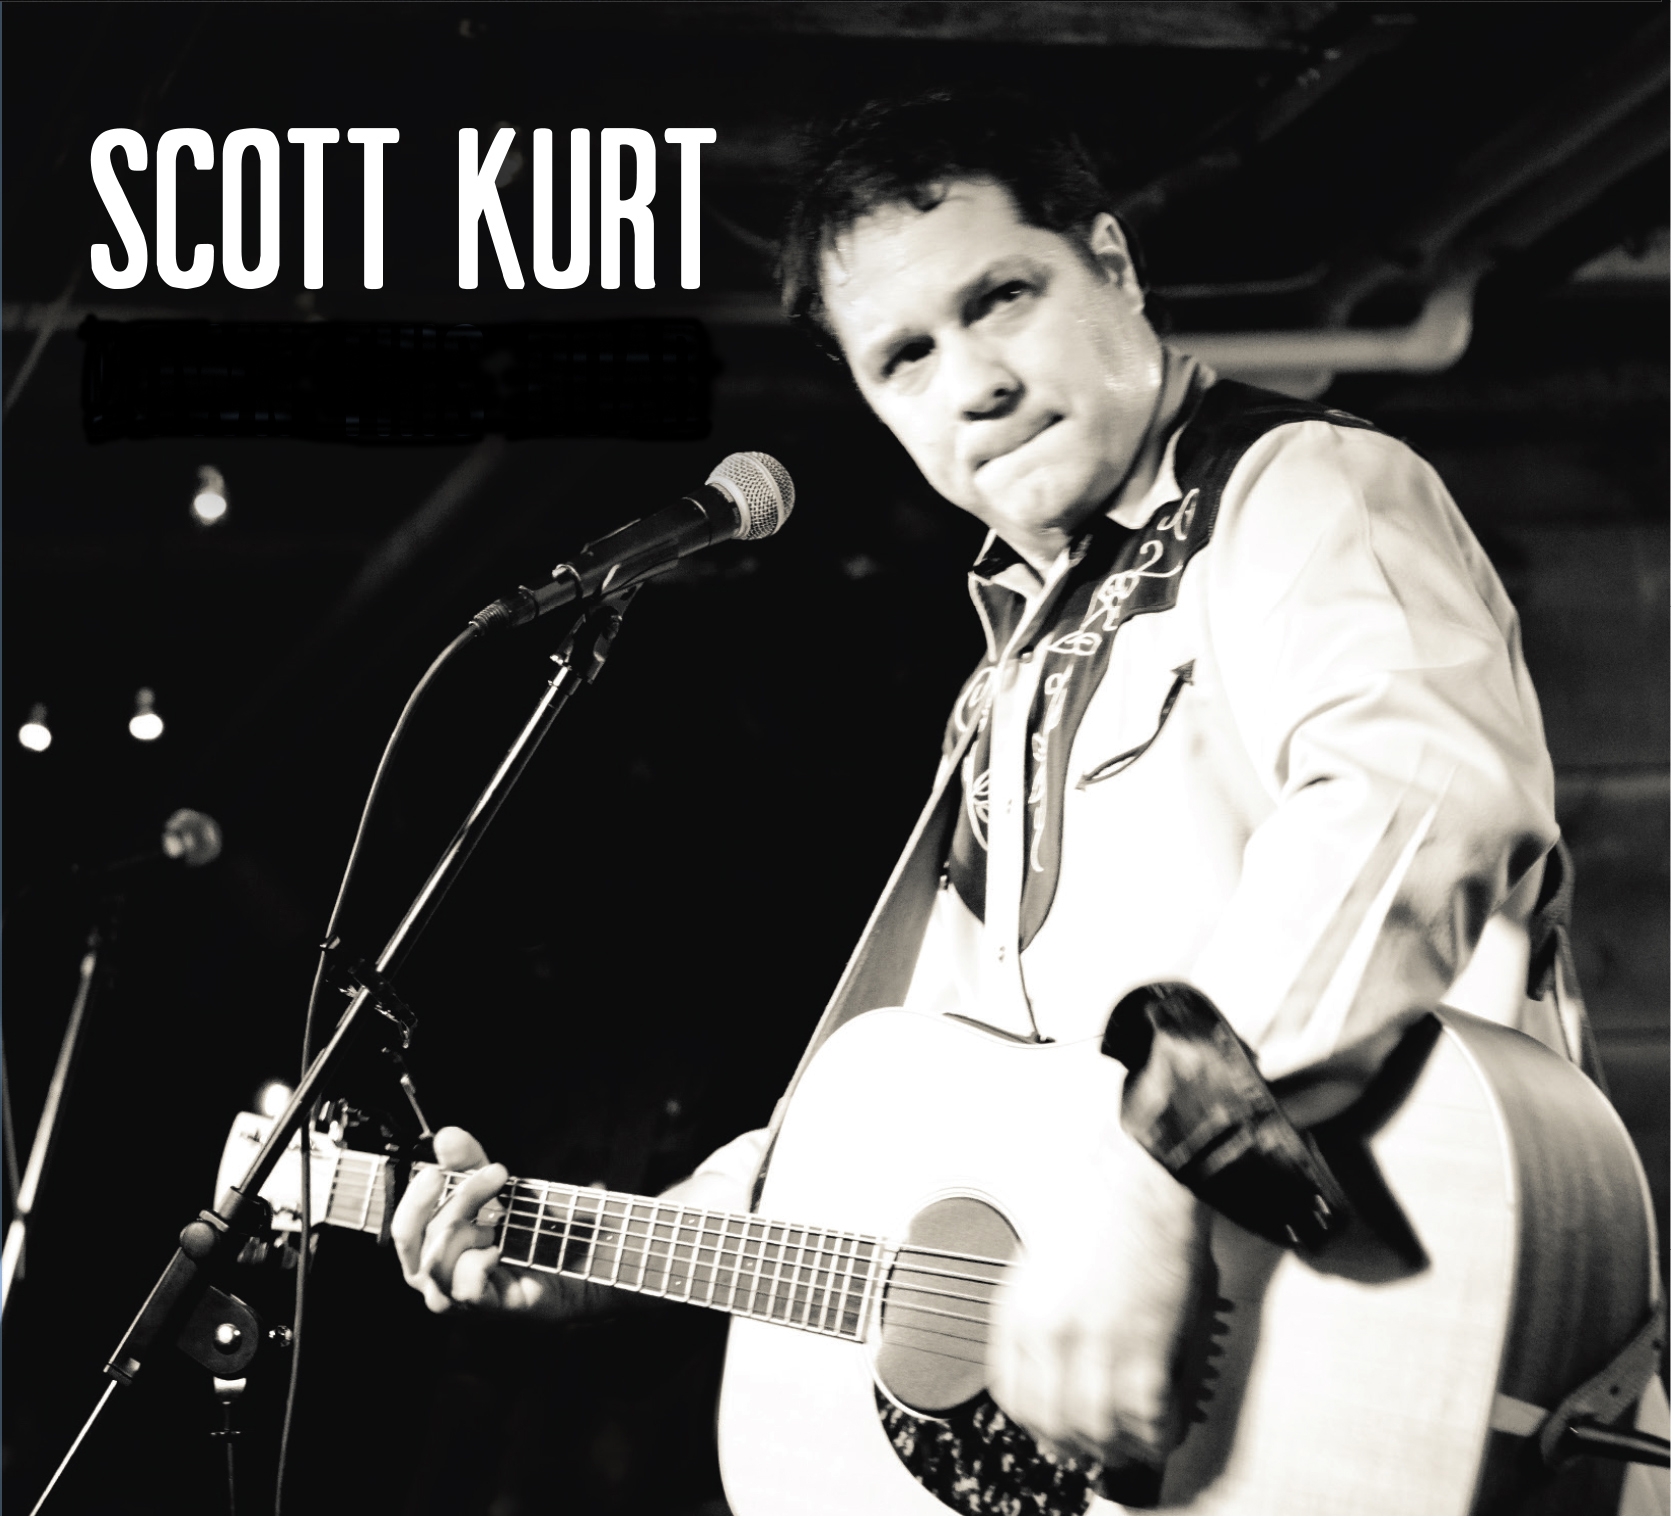 scott kurt hi res.jpg